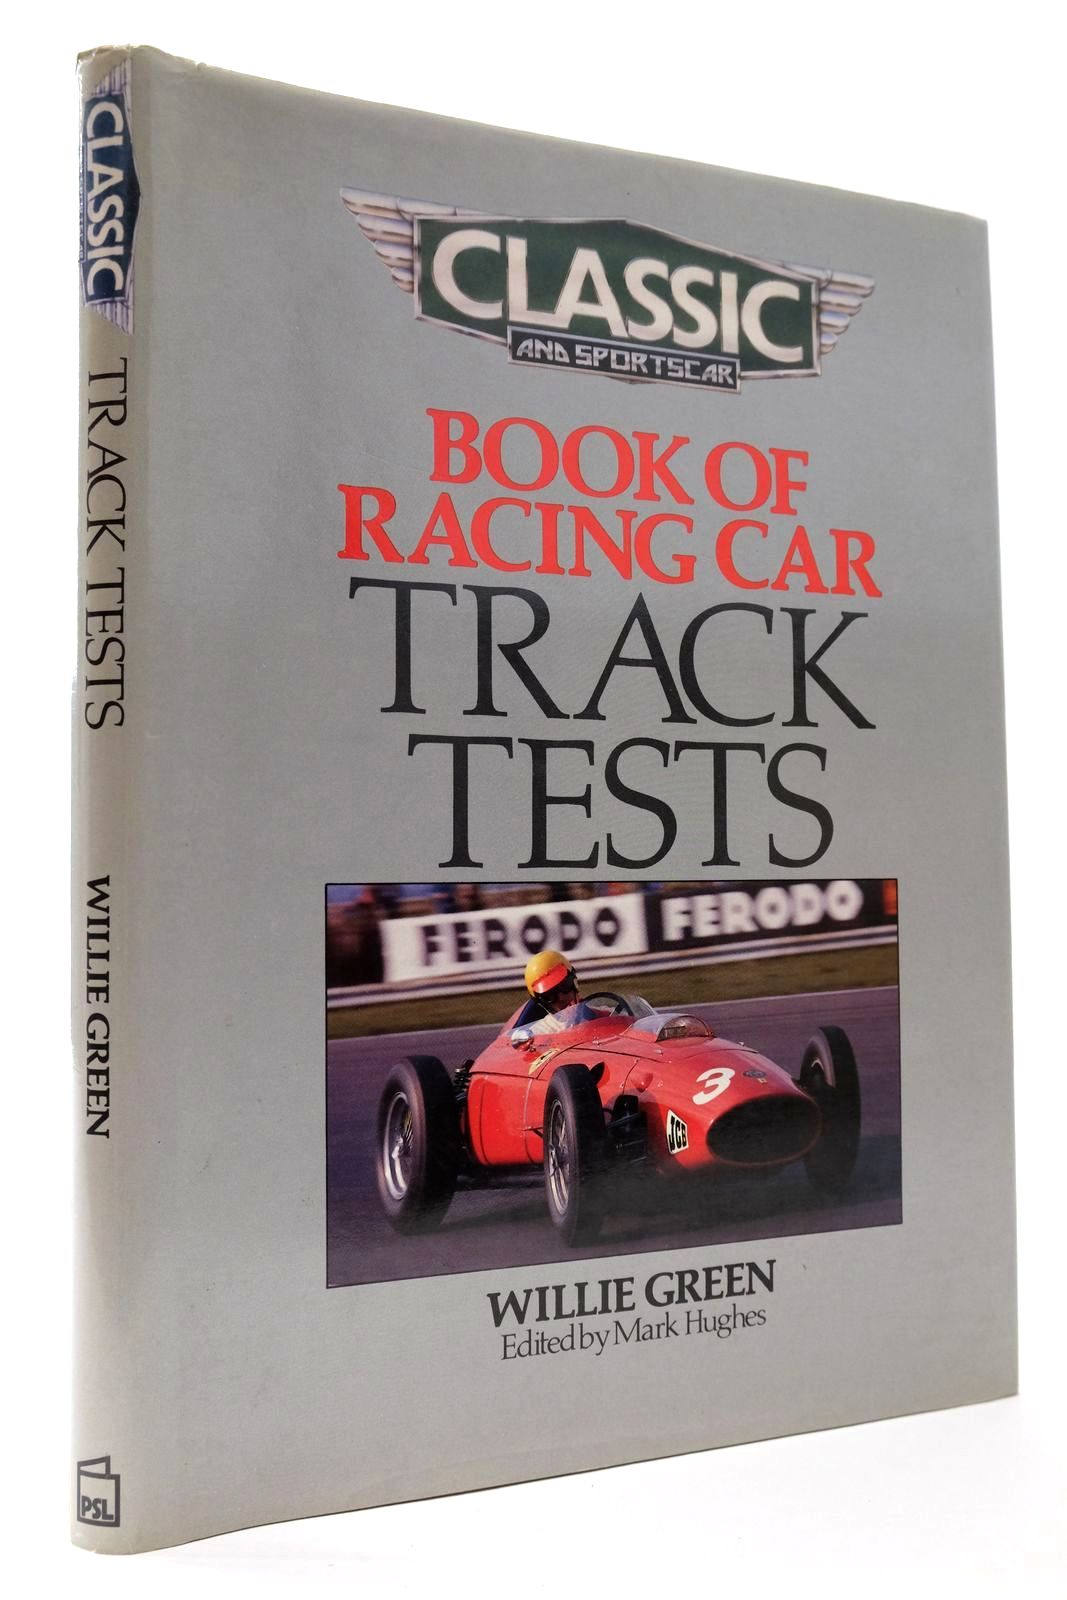 Photo of CLASSIC AND SPORTSCAR BOOK OF RACING CAR TRACK TESTS- Stock Number: 2133458